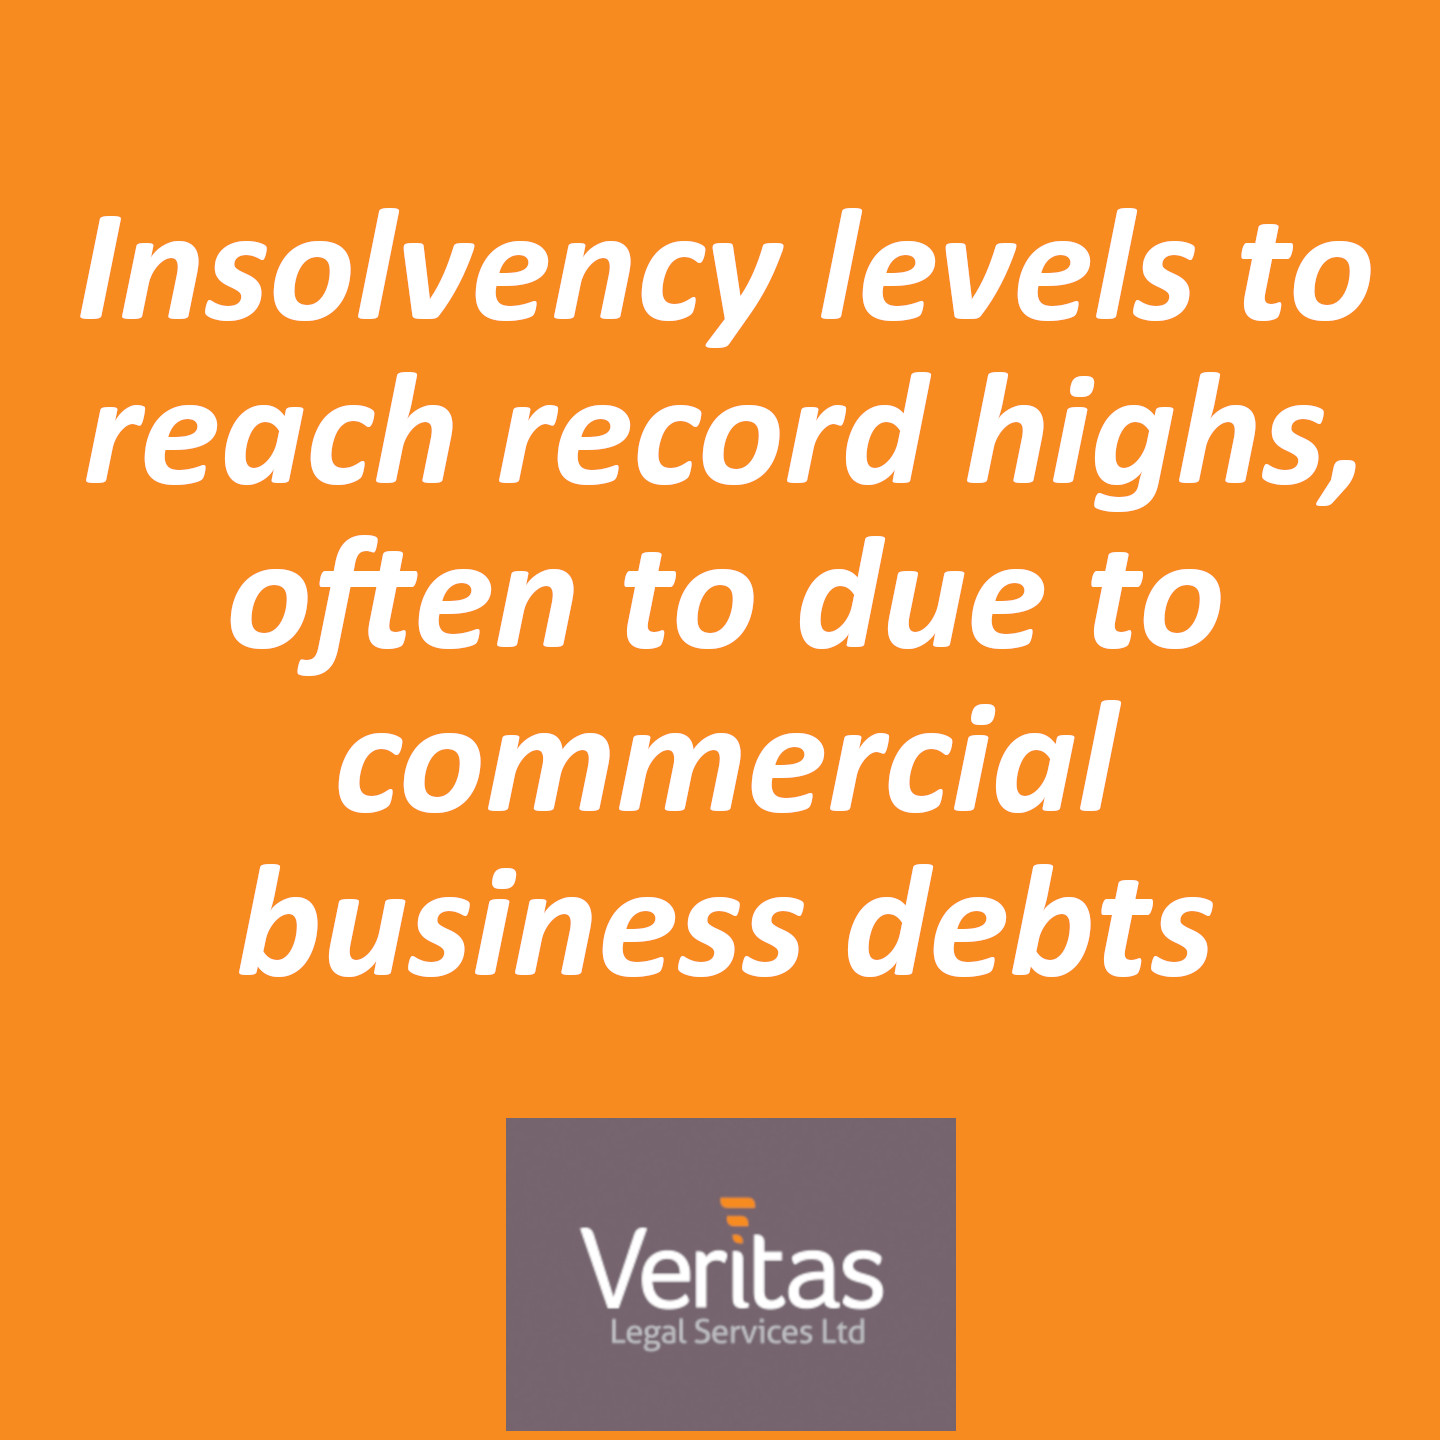 Insolvency levels to reach record highs, often to due to commercial business debts